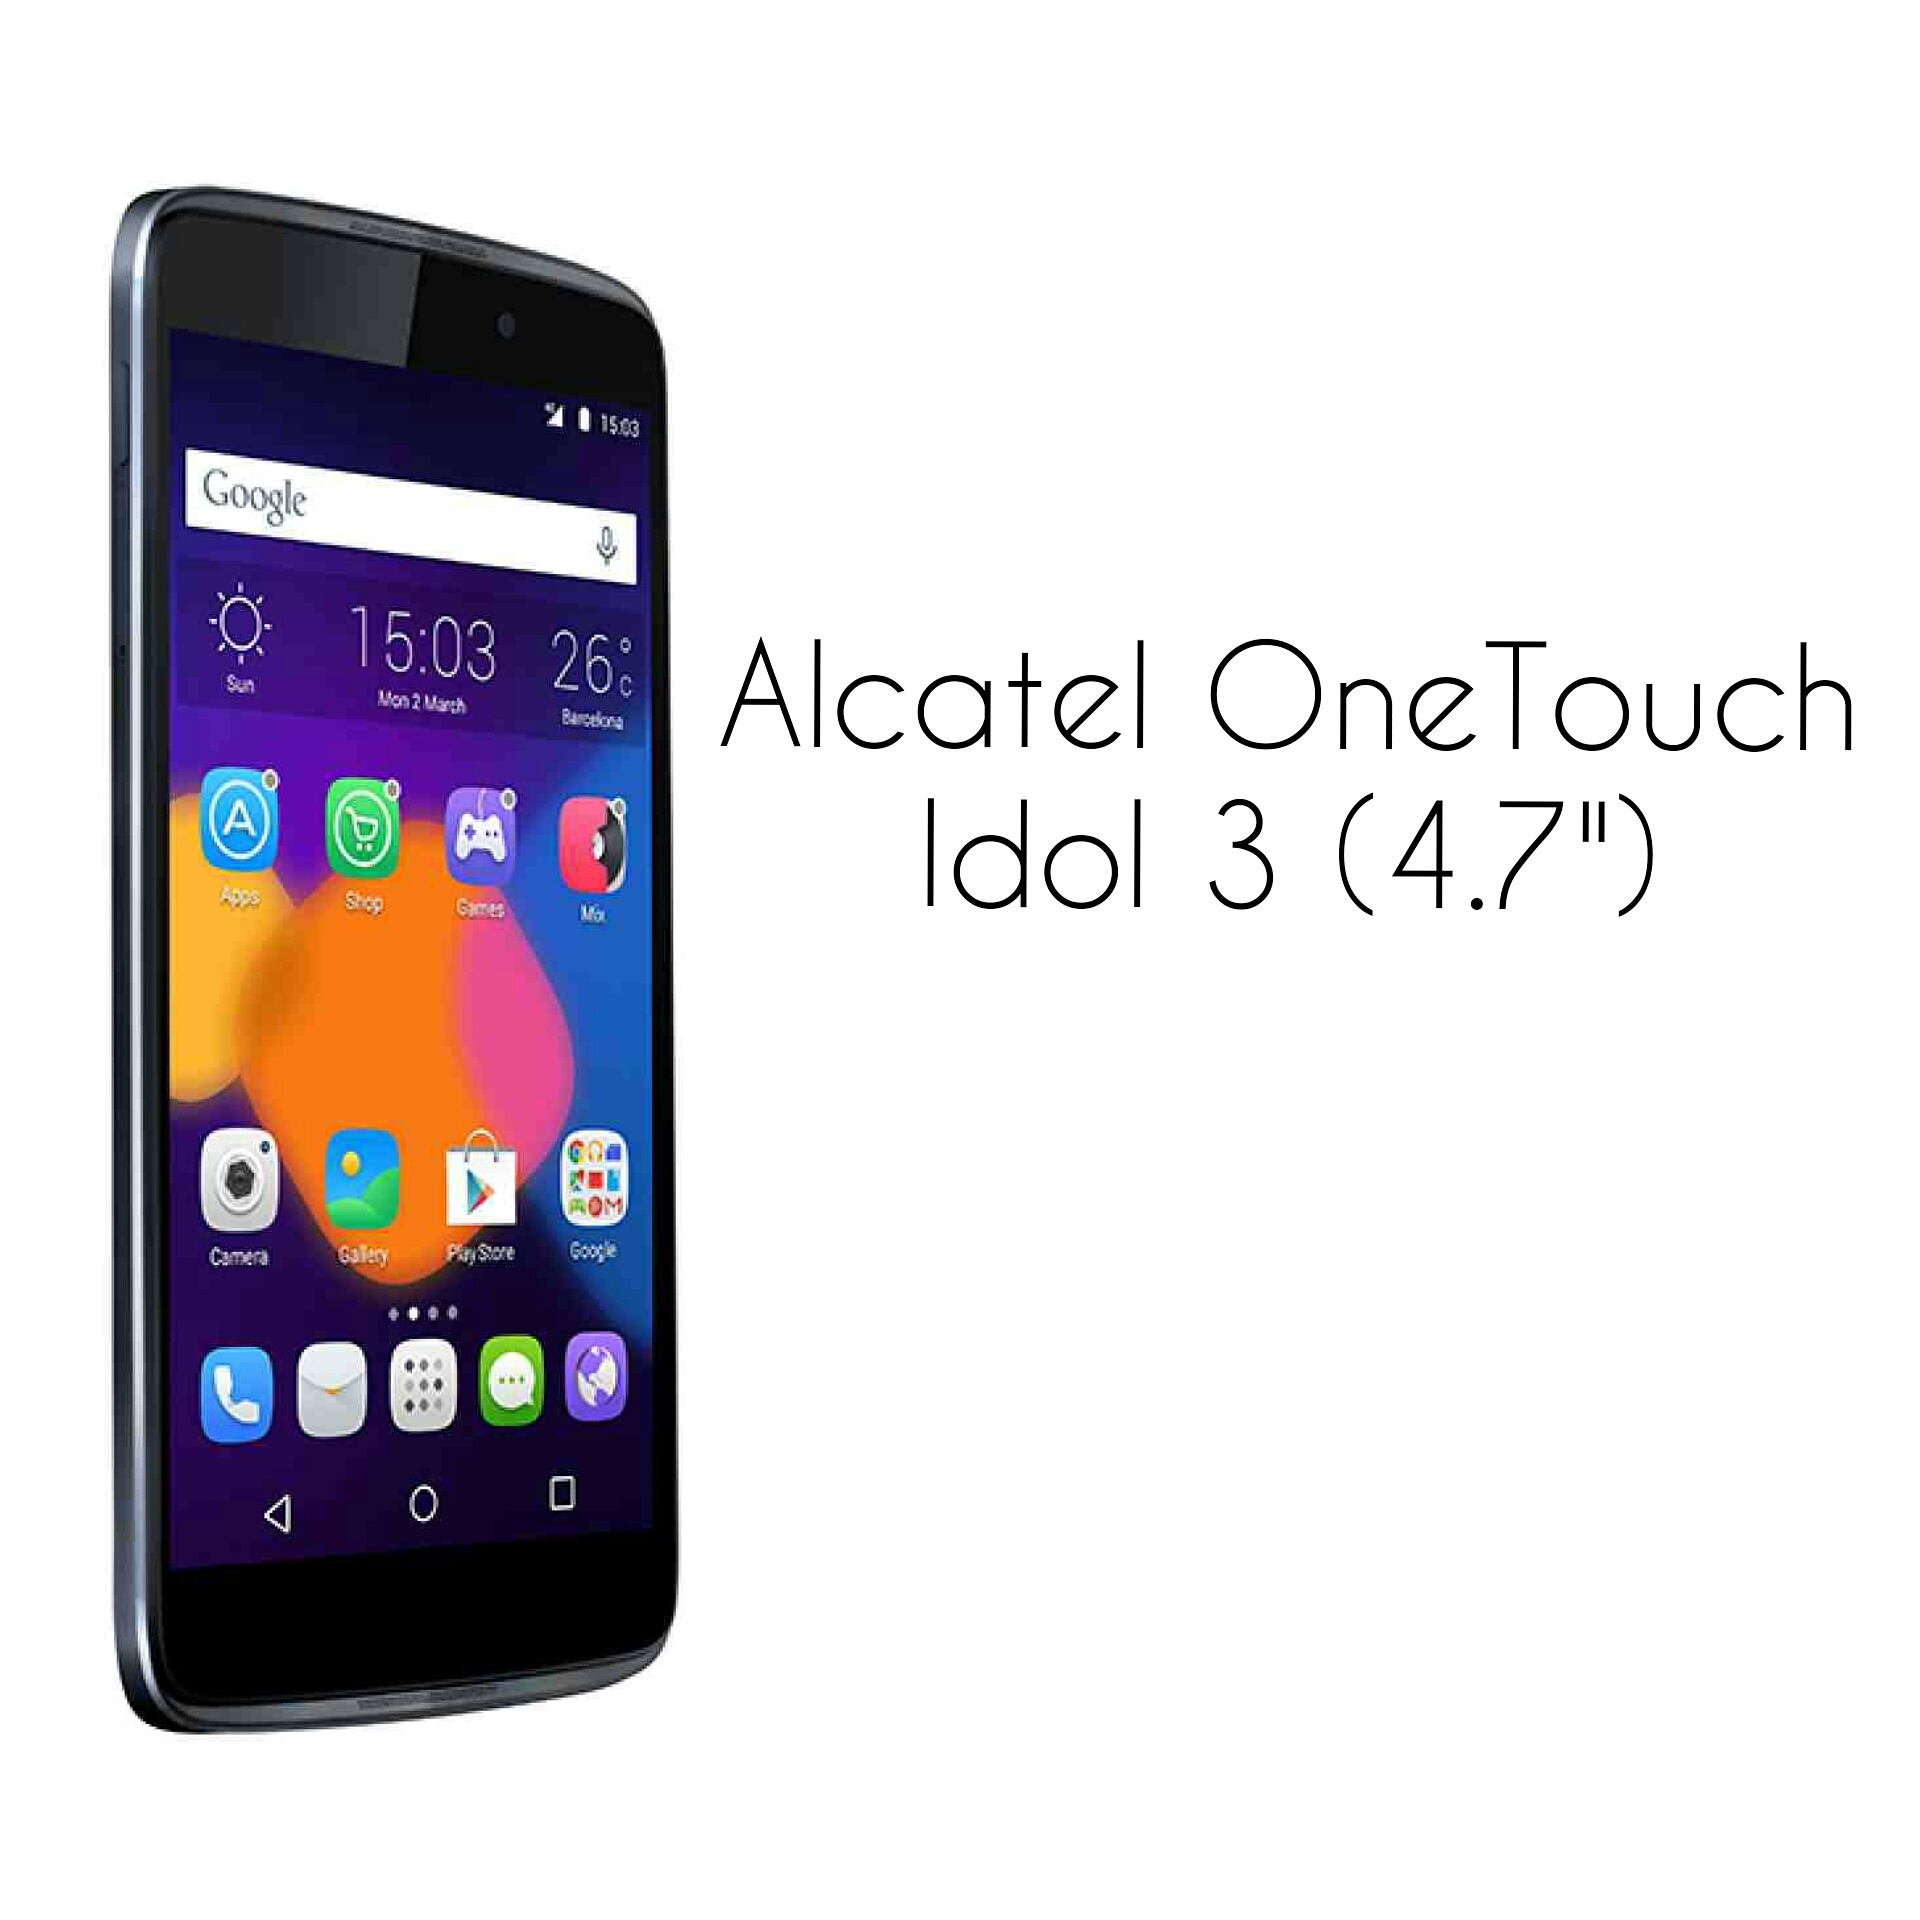 one touch idol 3 price